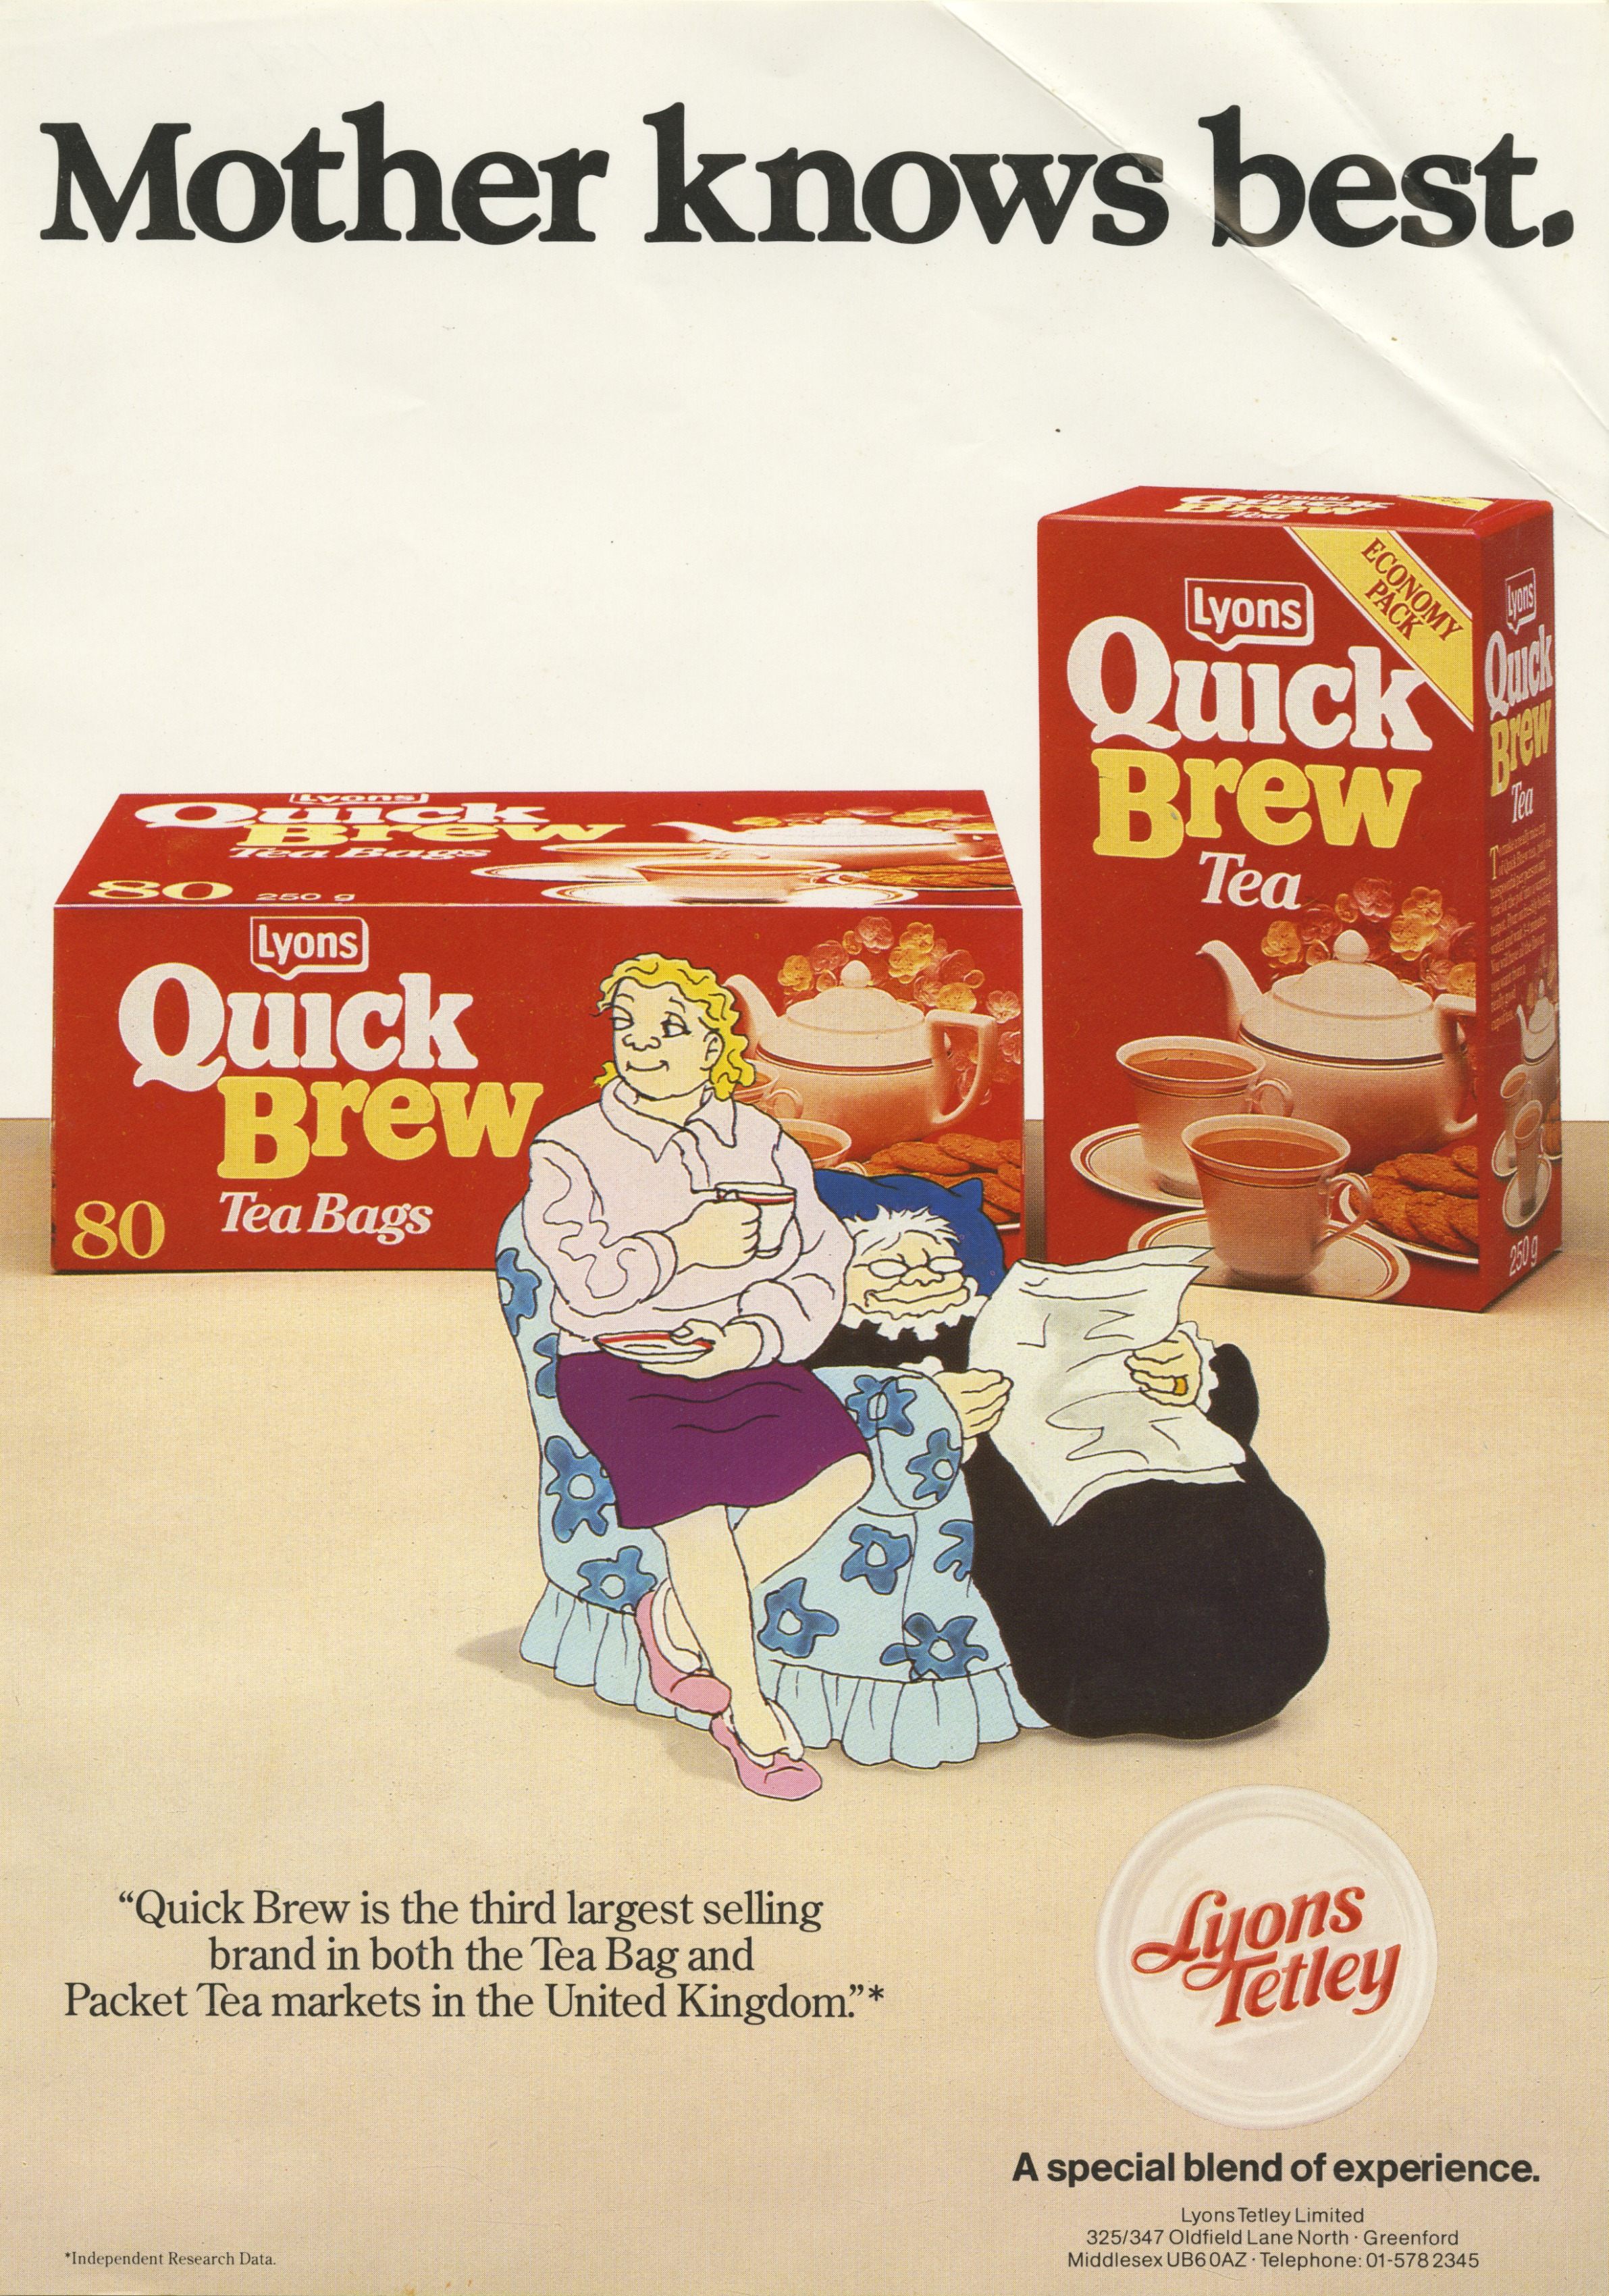 Colour advert for Lyons Quick Brew tea bags with Giles cartoon - Carl Giles, c.1985 (Image ref: GAPC0612)